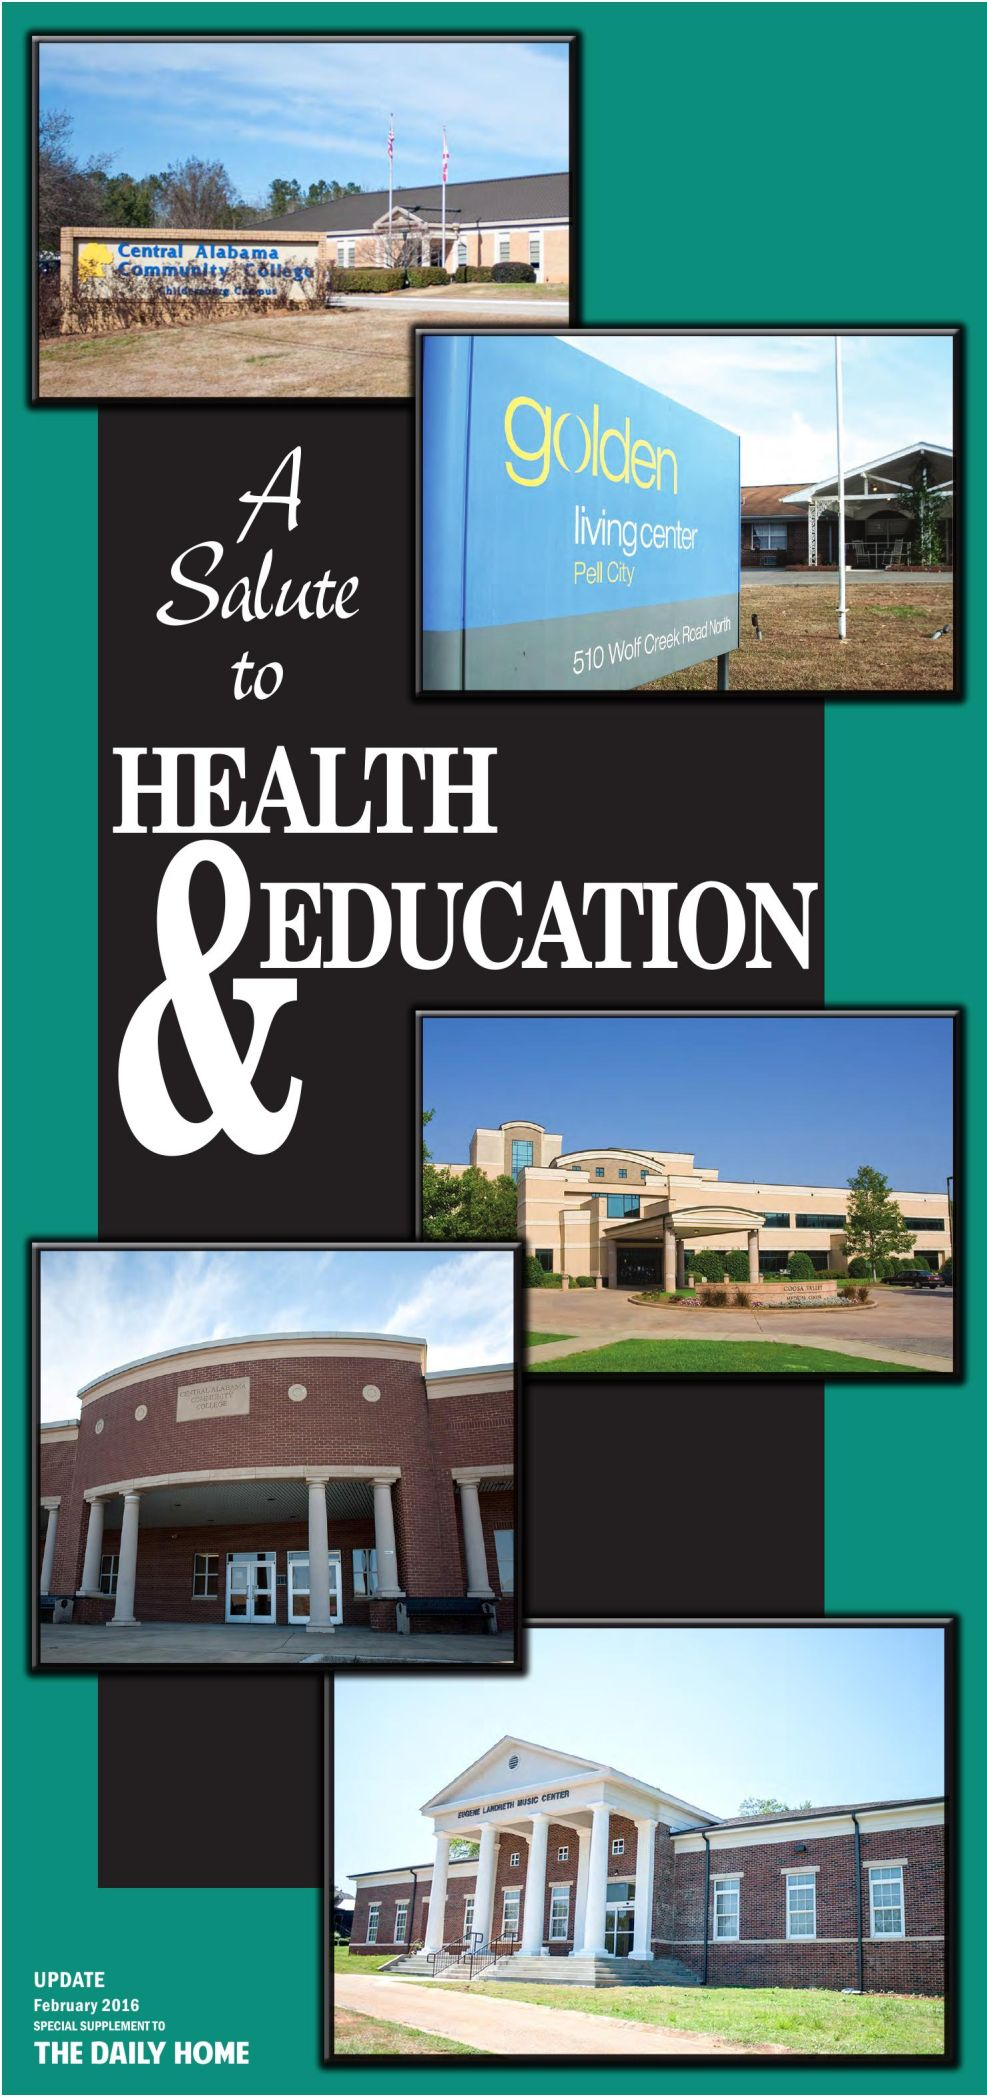 Update 2016 - Health & Education